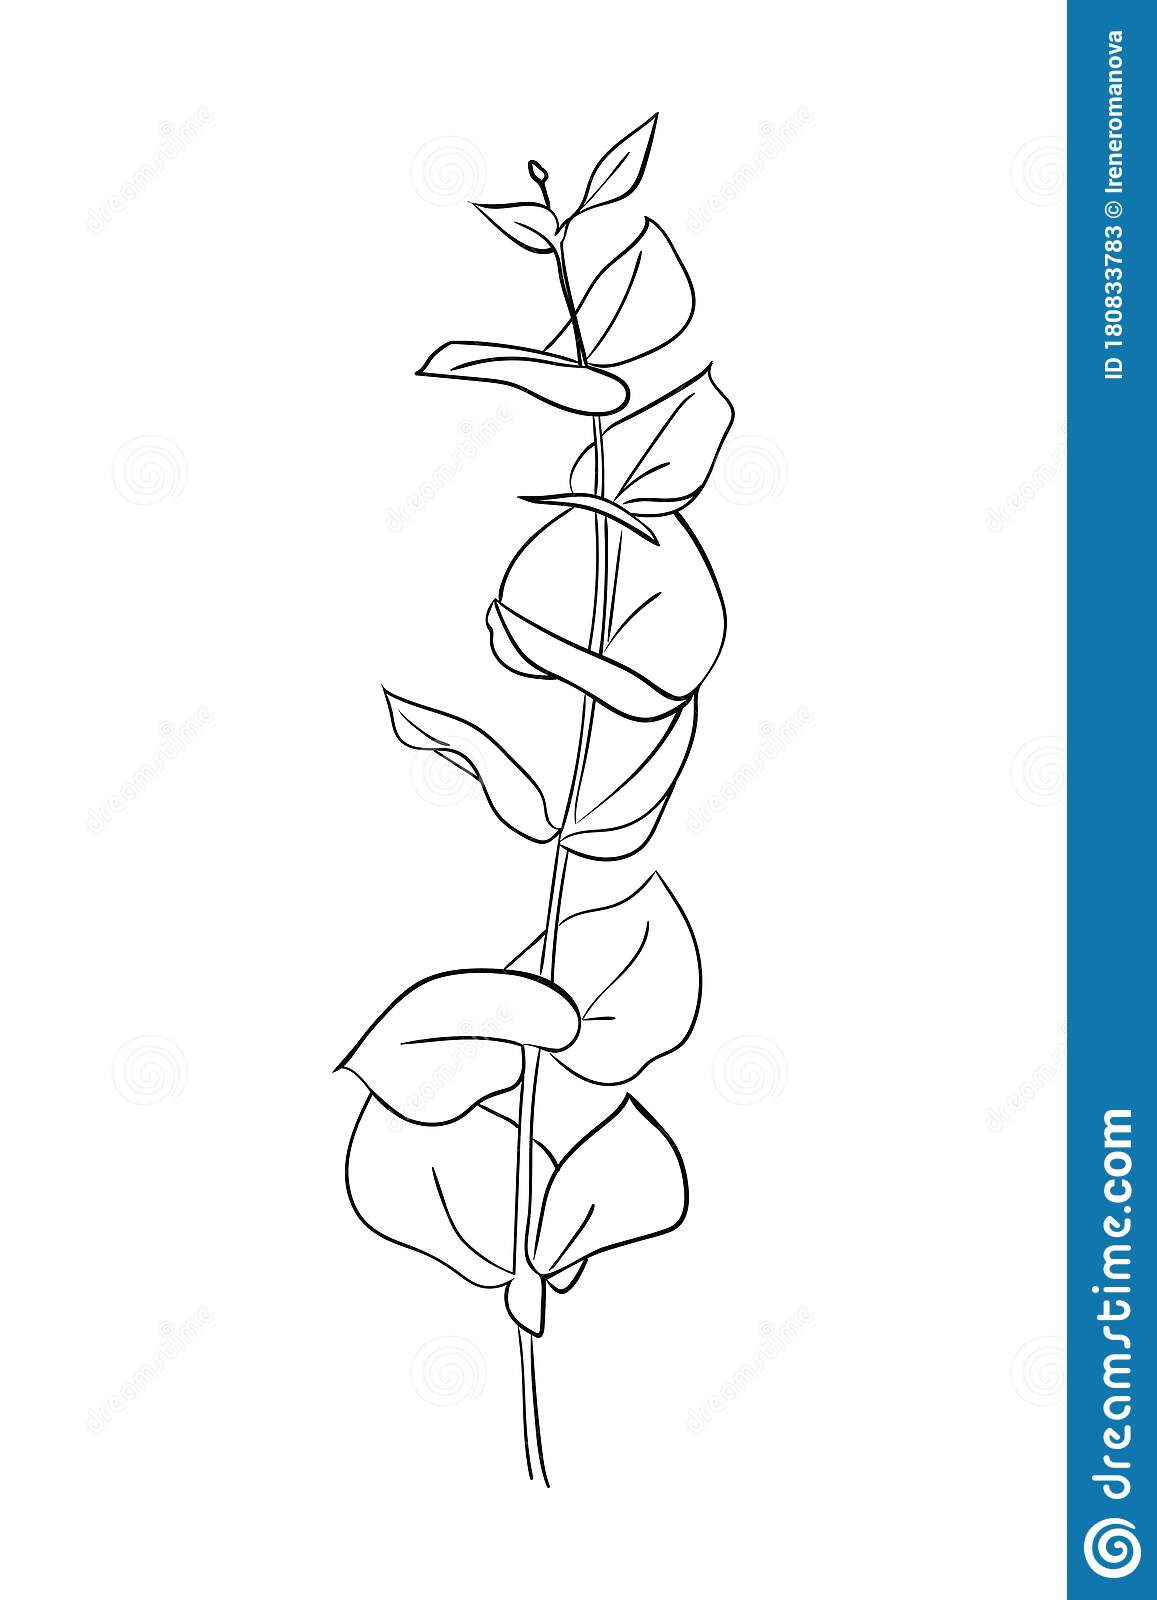 Drawn Outline Leaf Isolated On A White Background Abstract Minimal Plants Stock Vector Illustration Of Drawing Branch 180833783